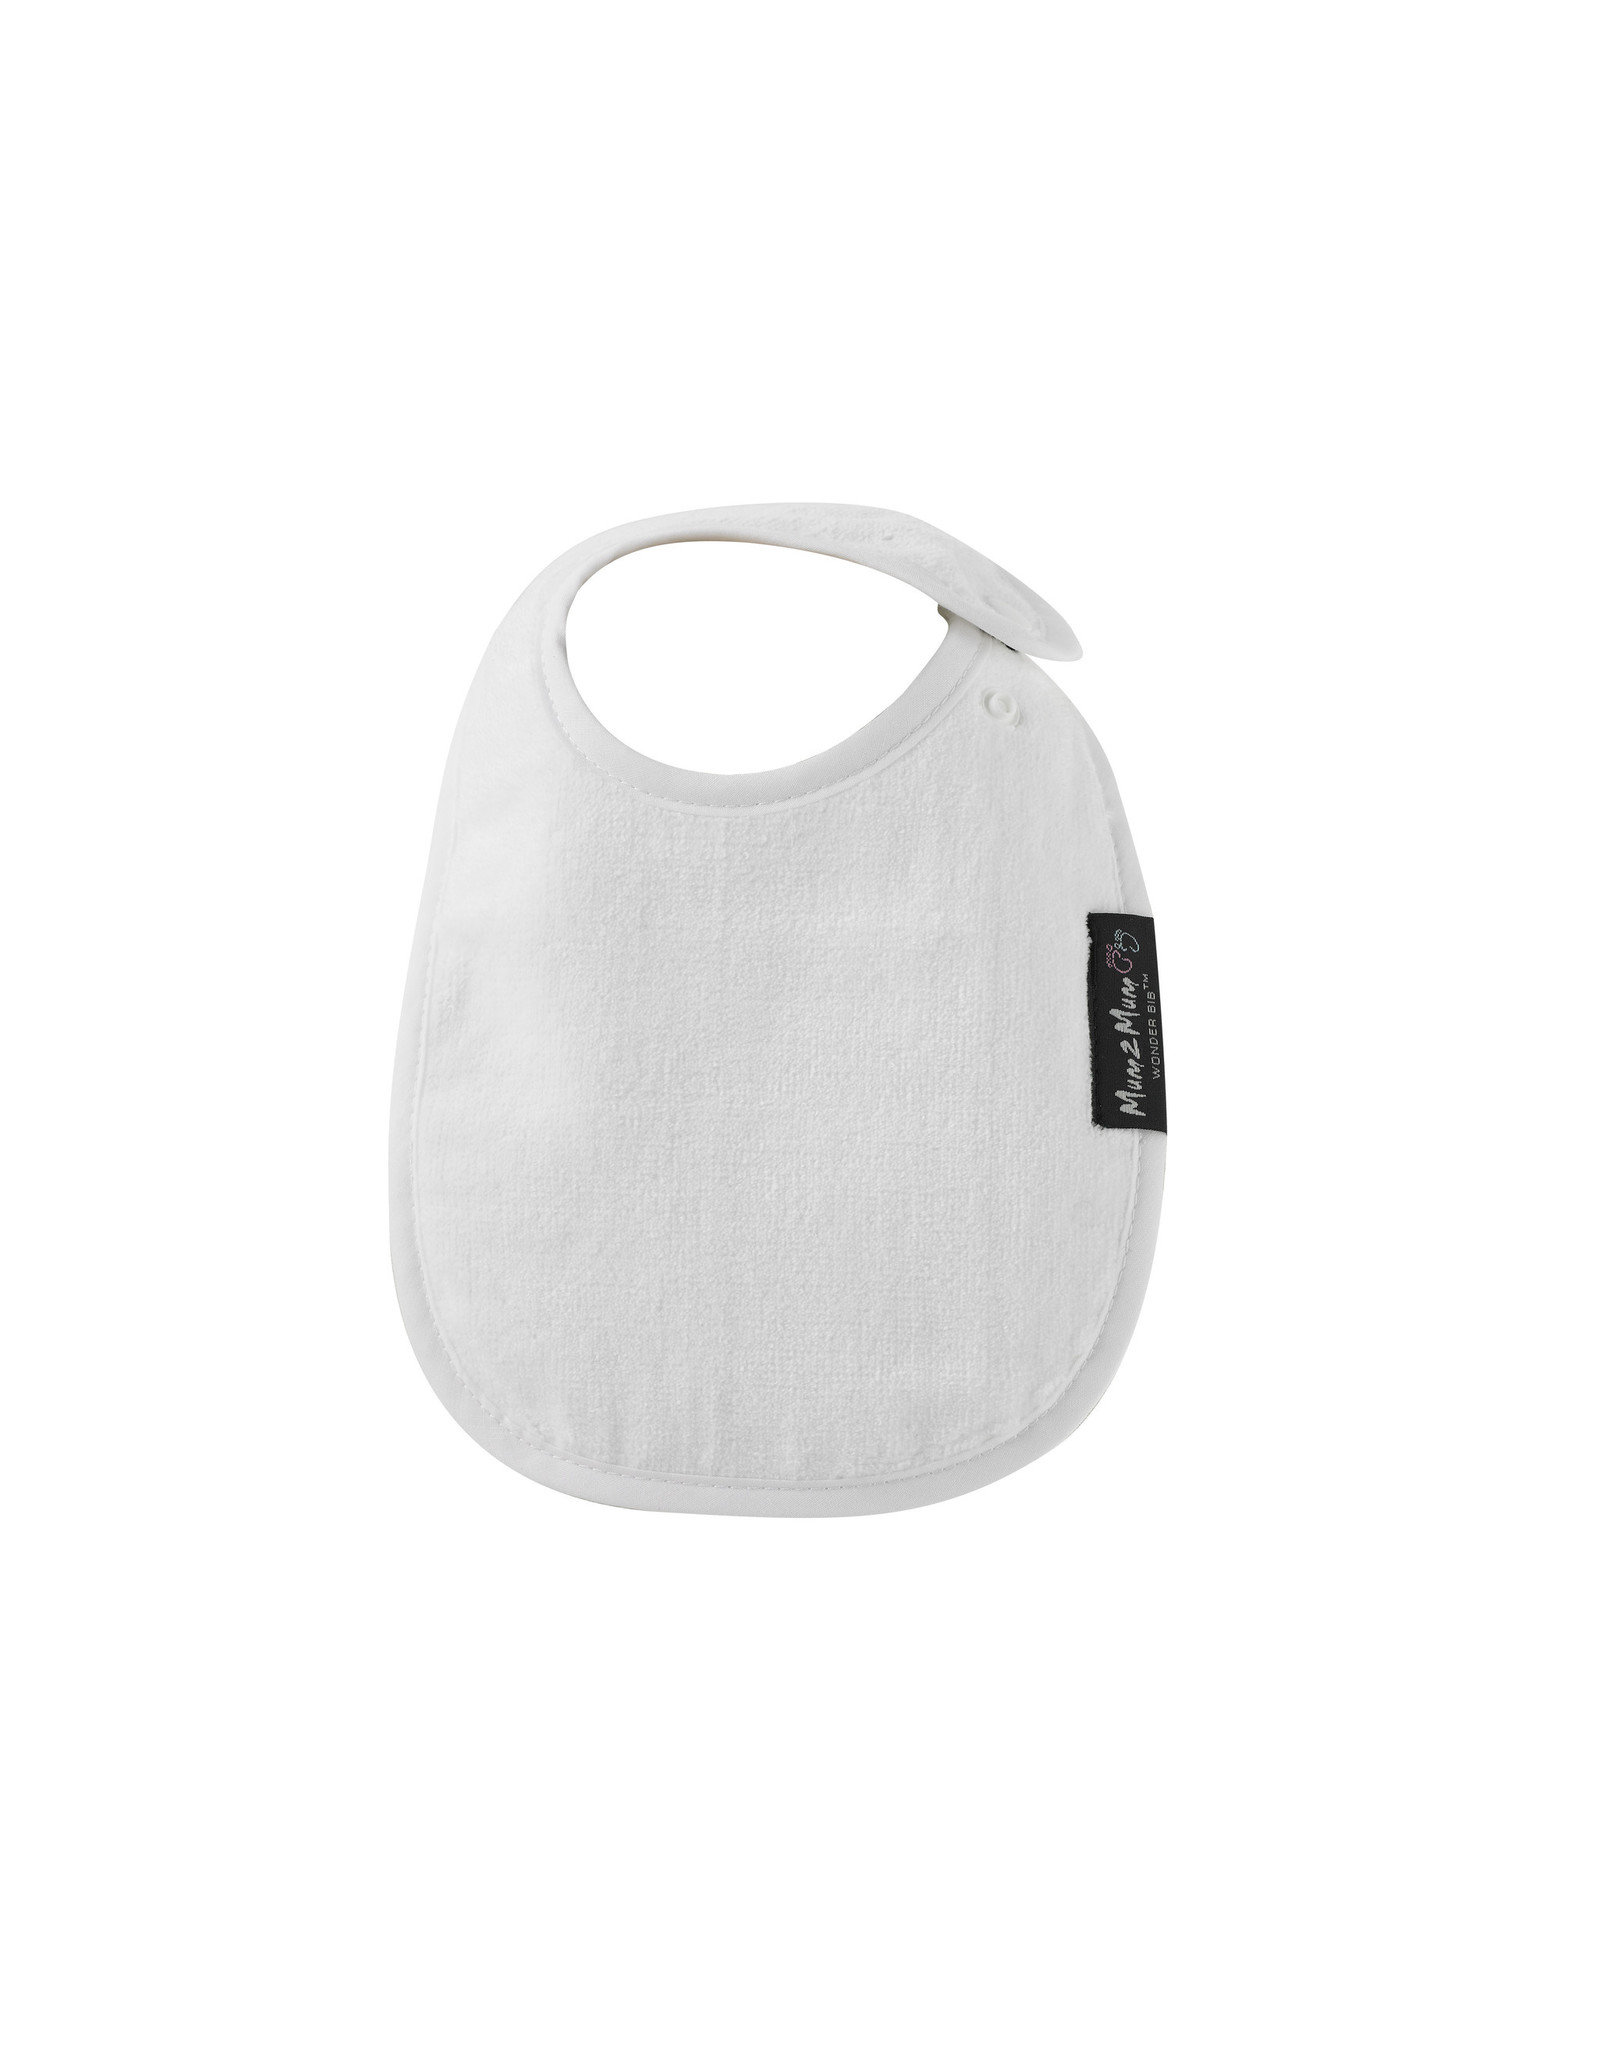 Mum2Mum Mum2Mum Infant Bib White 6 pieces